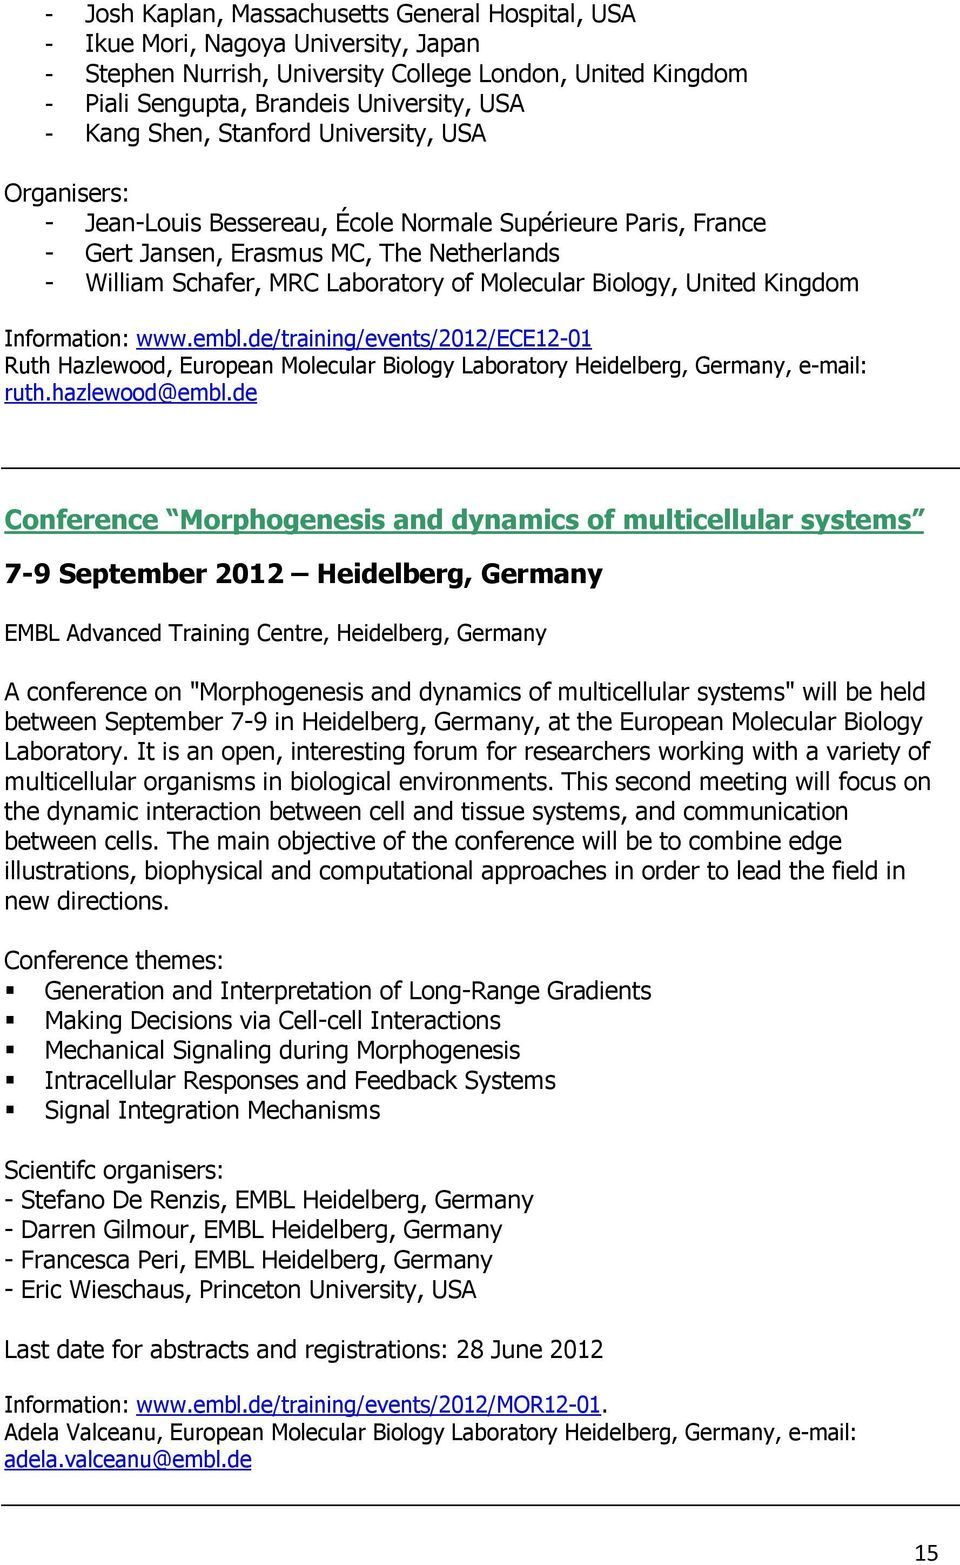 Biology, United Kingdom Information: www.embl.de/training/events/2012/ece12-01 Ruth Hazlewood, European Molecular Biology Laboratory Heidelberg, Germany, e-mail: ruth.hazlewood@embl.